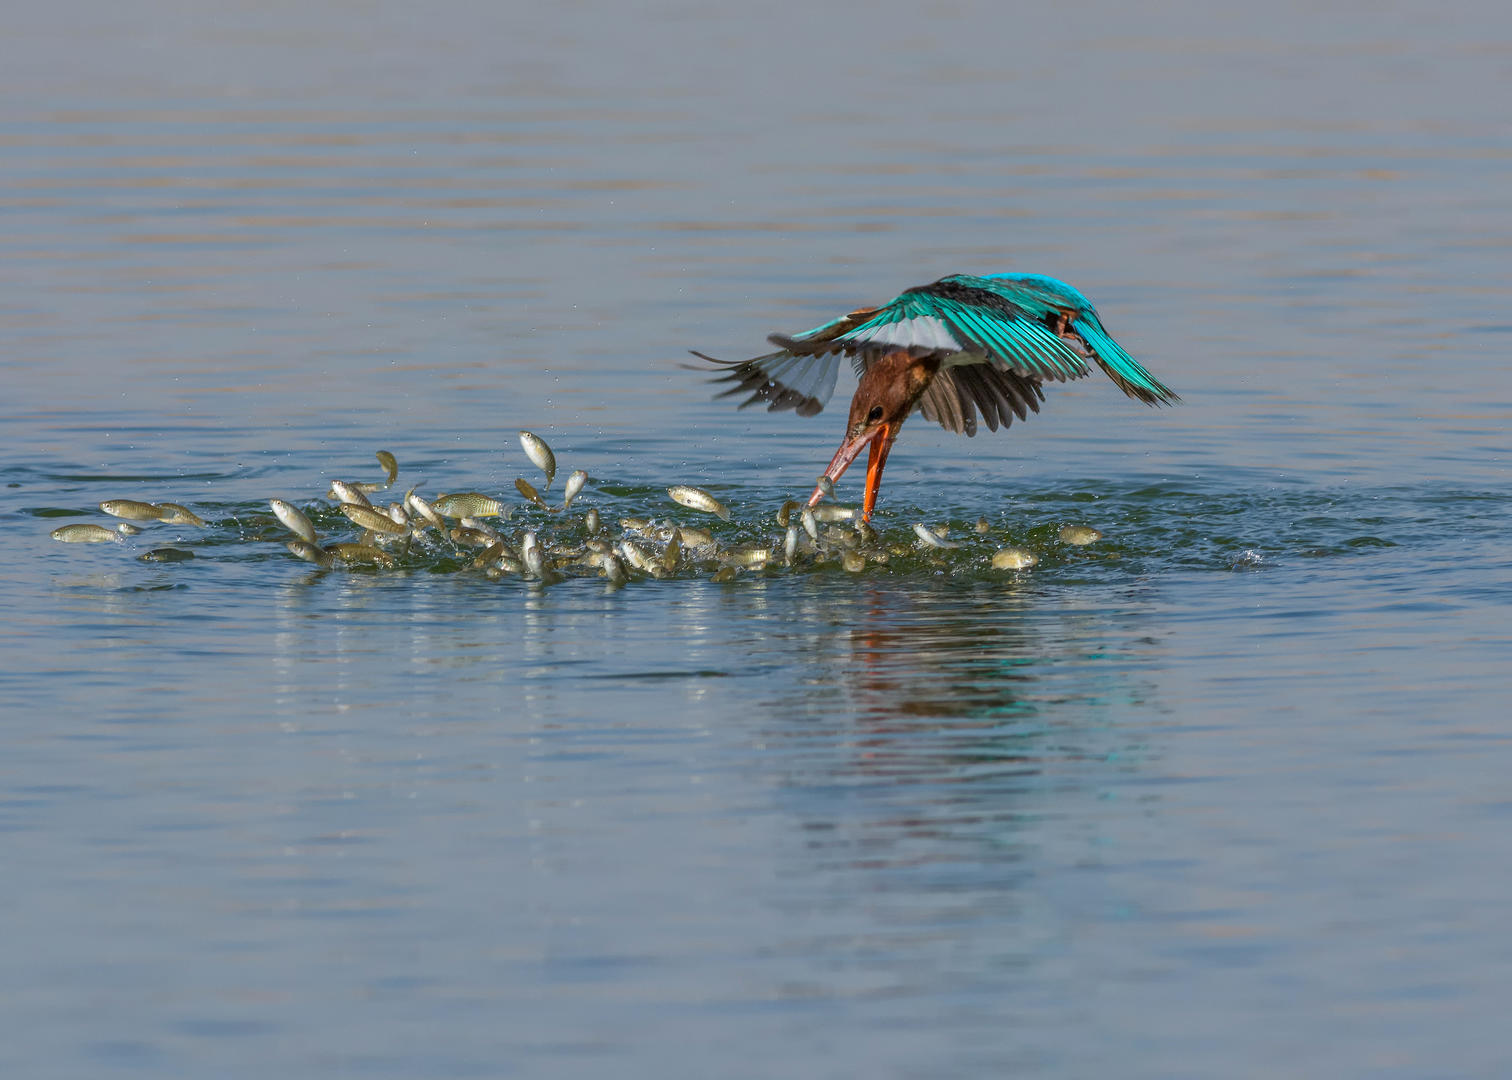 Bird Behaviour, Silver. Diving Kingfisher by Malek Alhazzaa.